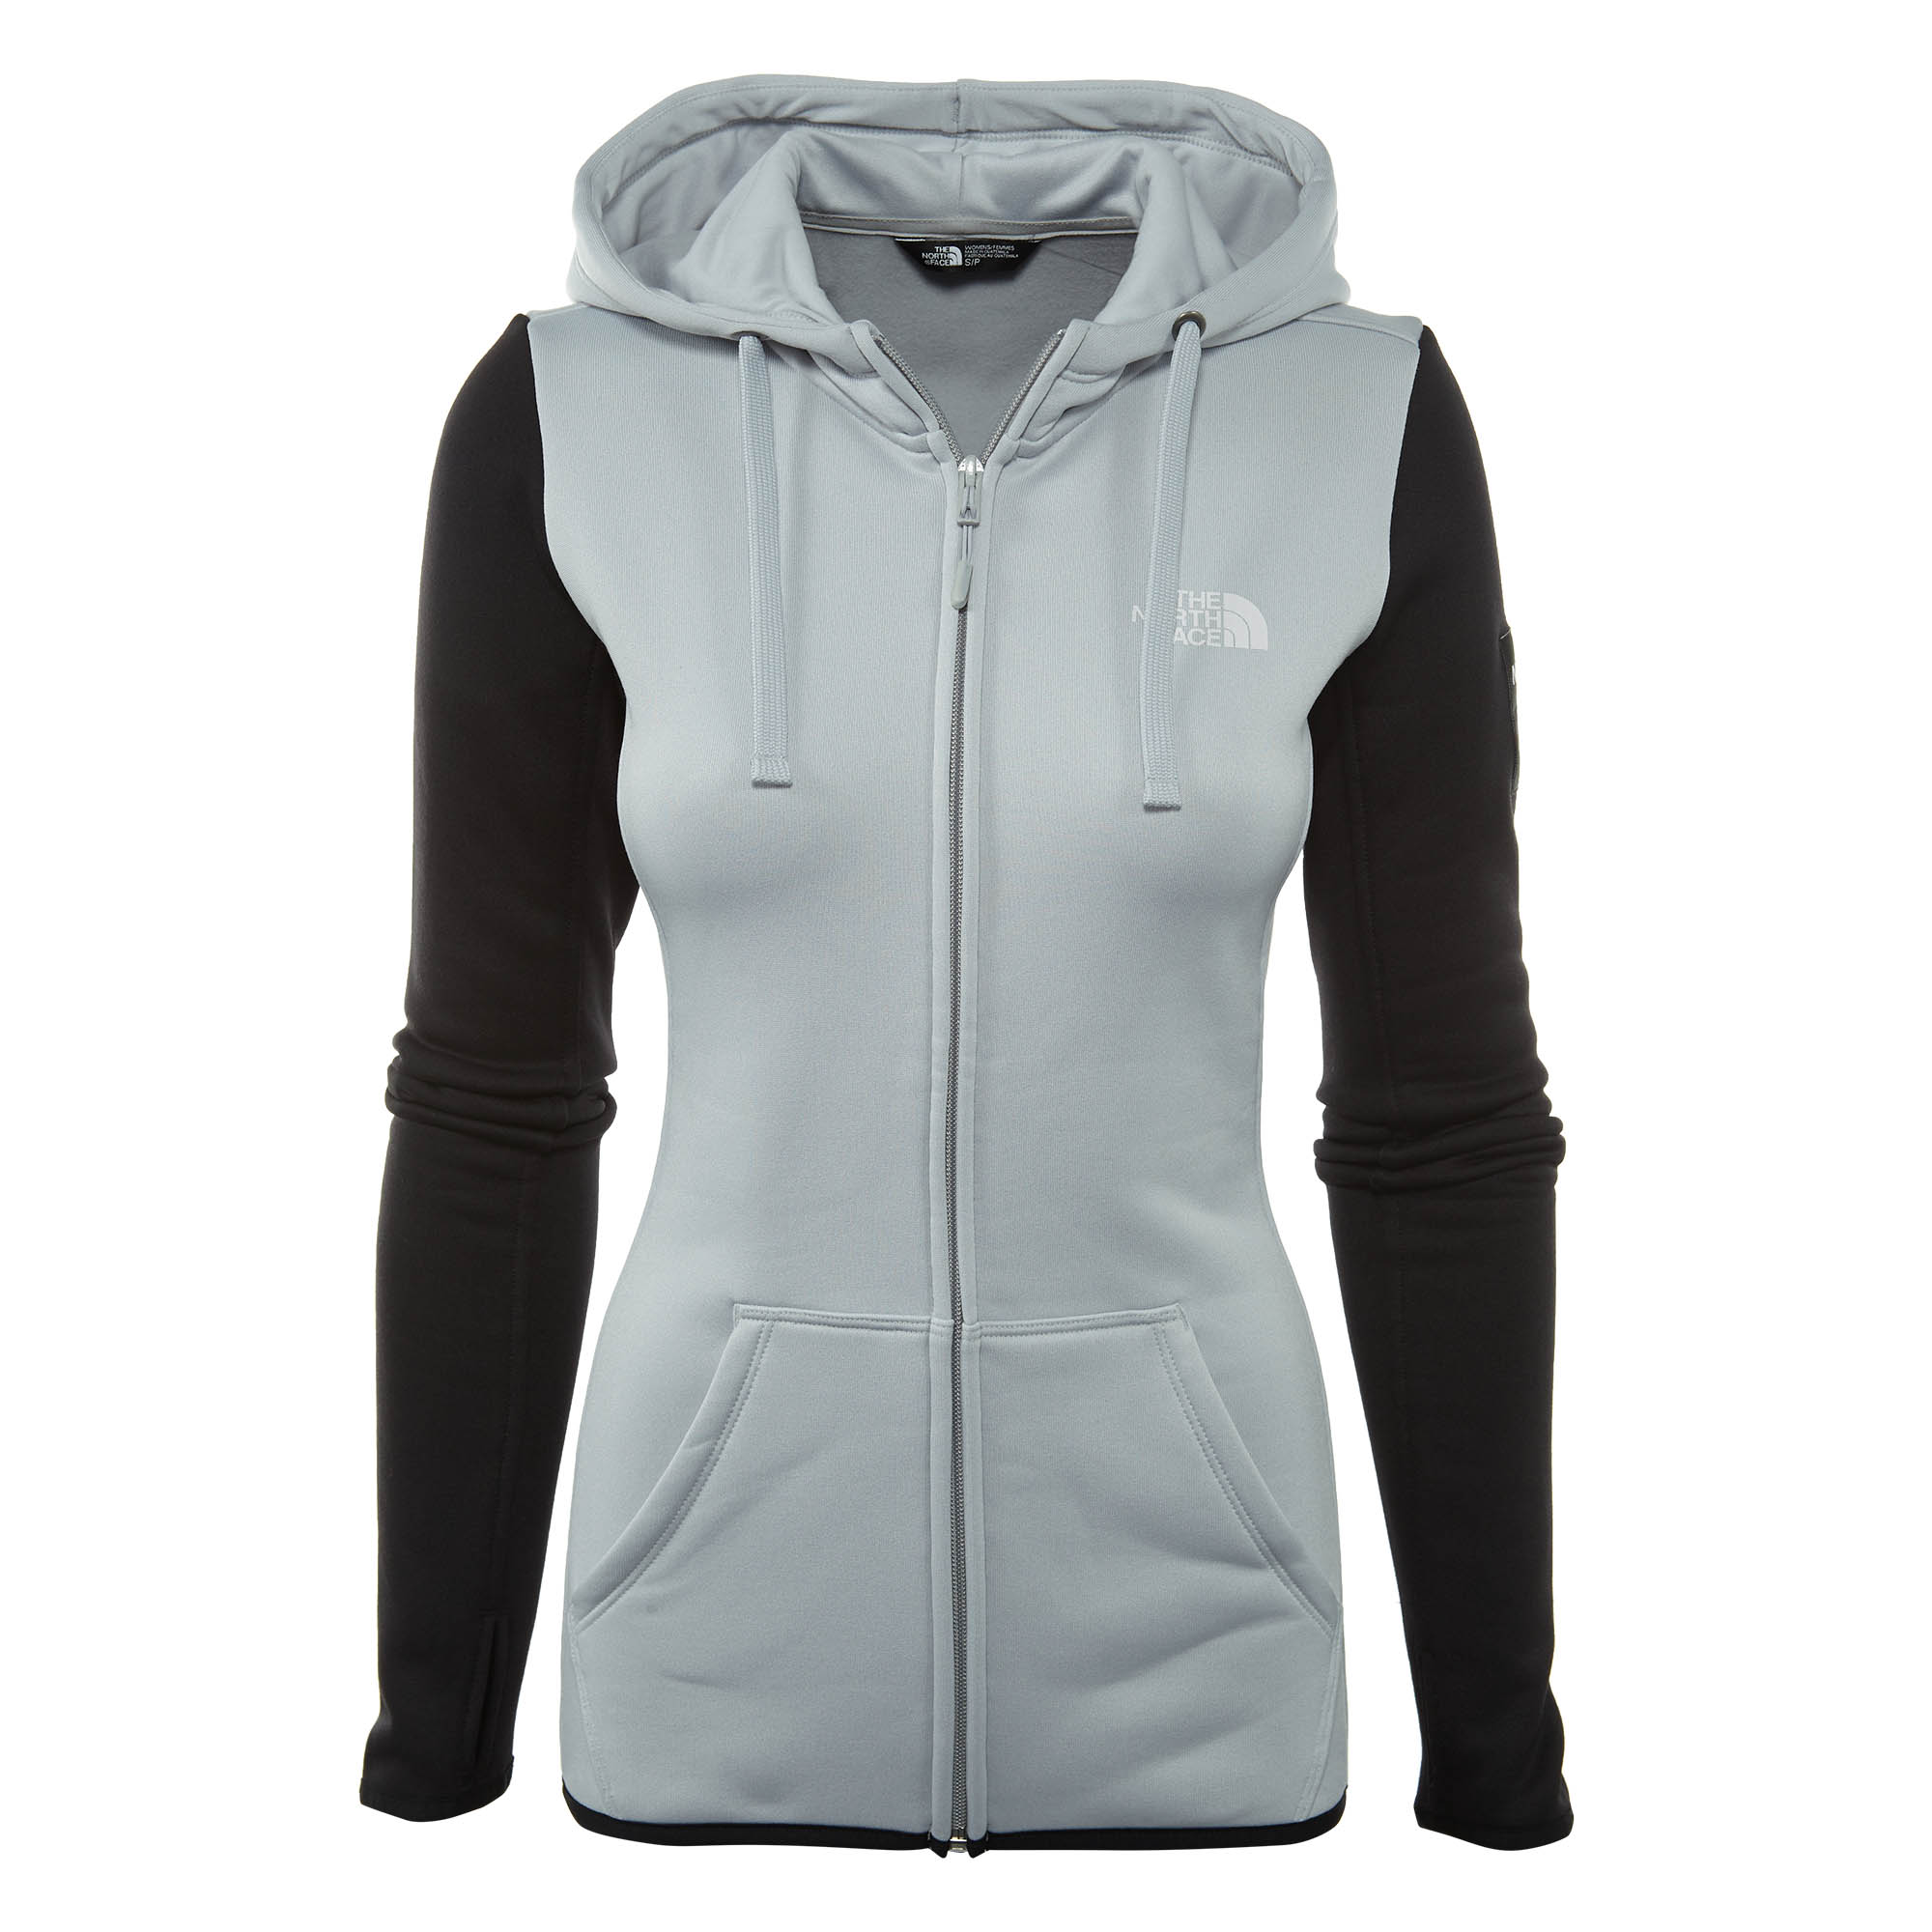 Details about The North Face Womens Ic Half Dome Hoodie A35AB-C3F 553c40027